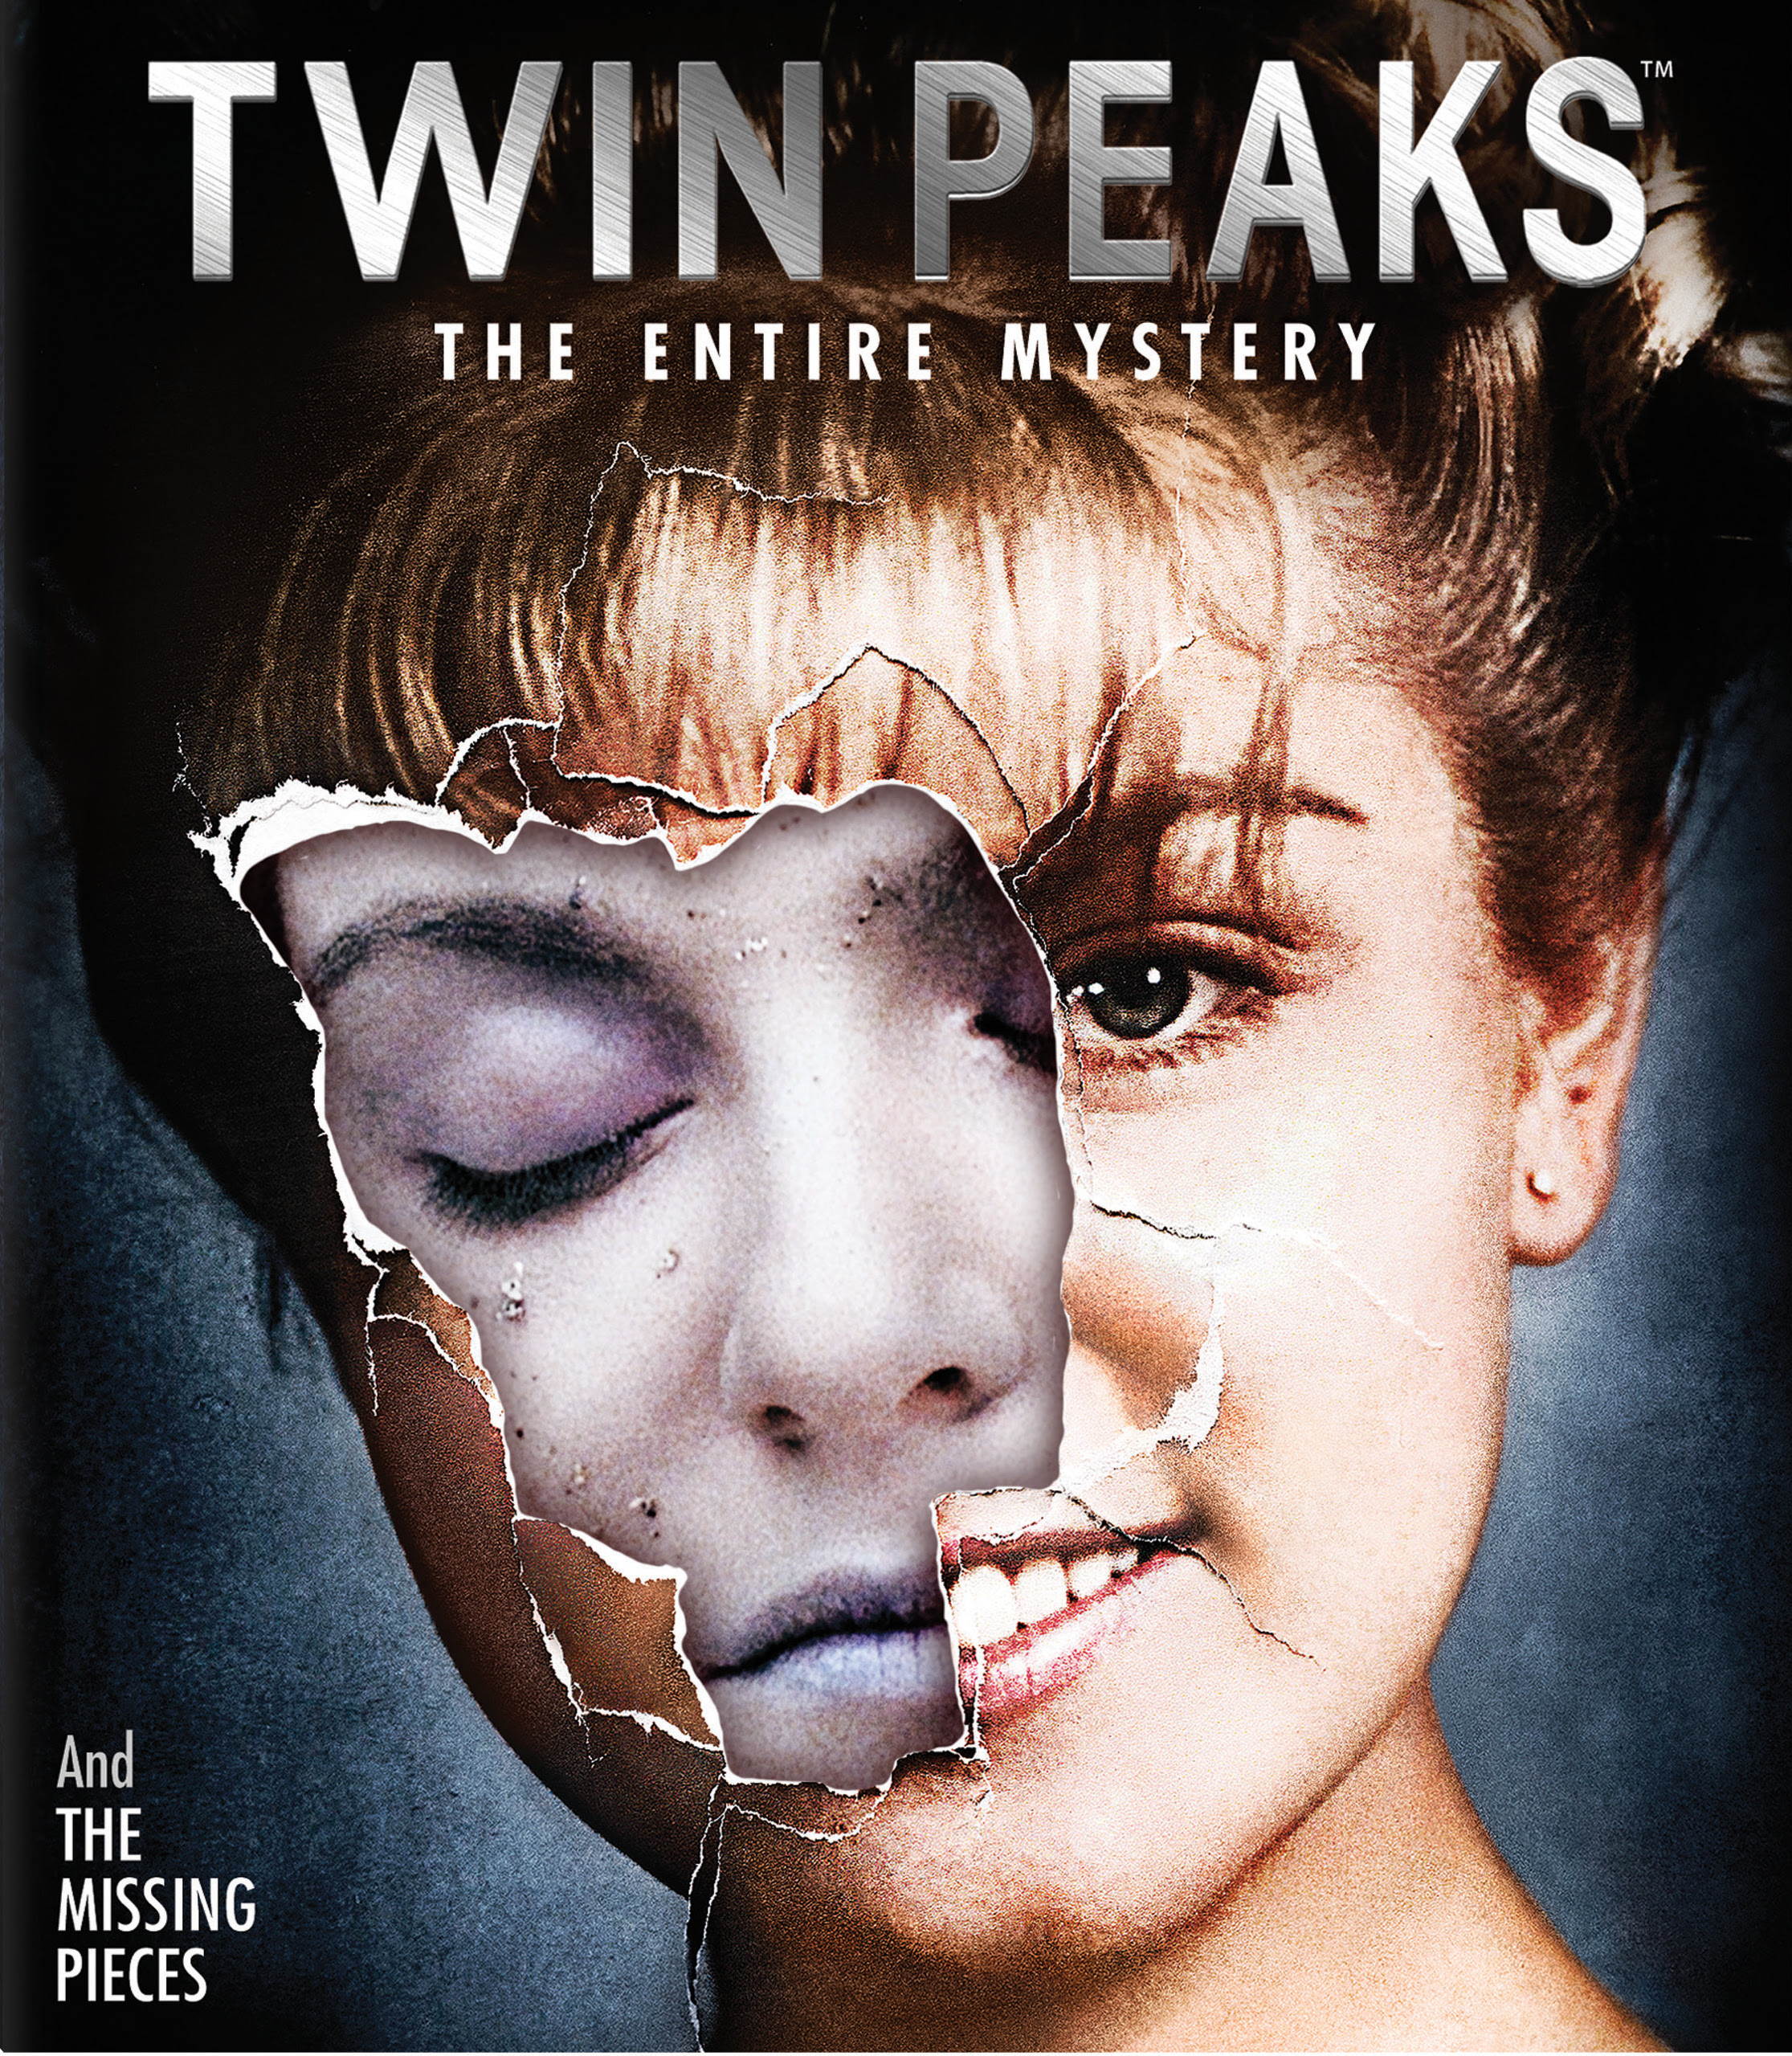 The Cast Of Twin Peaks Have Rallied For Bring David Lynch